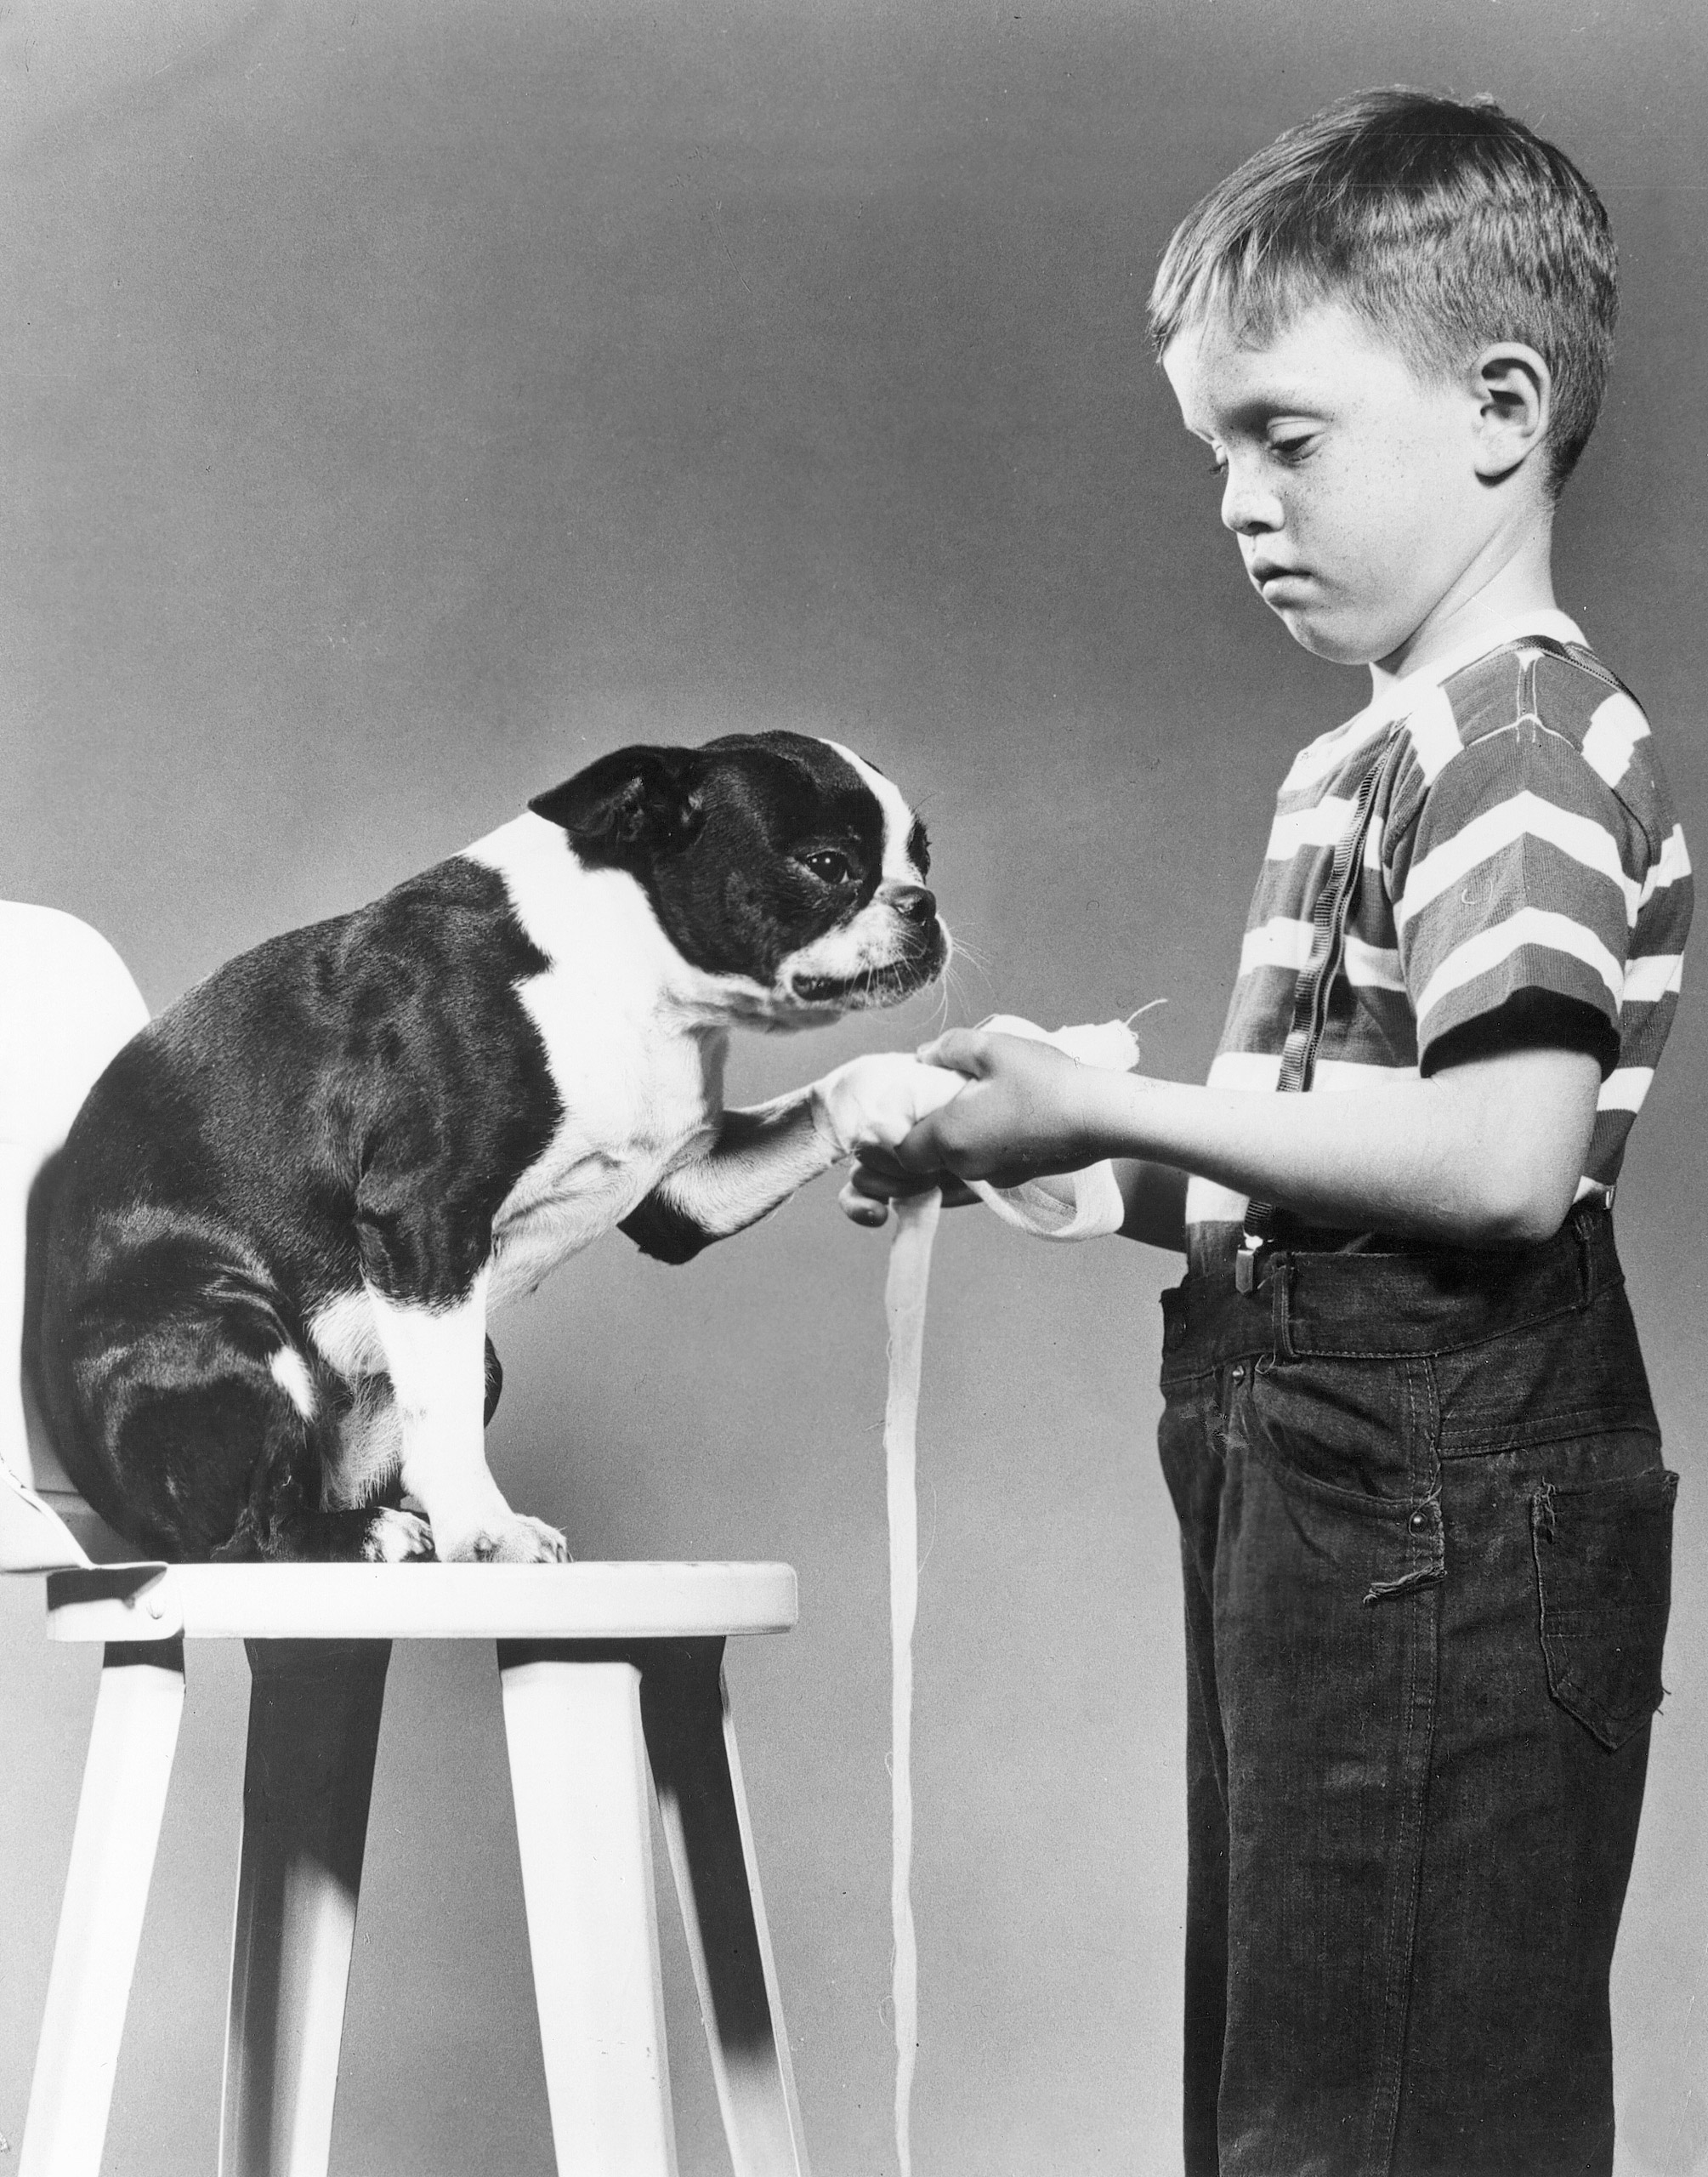 Boy in ASPCA humane education class learning to bandage a dog, 1950s.